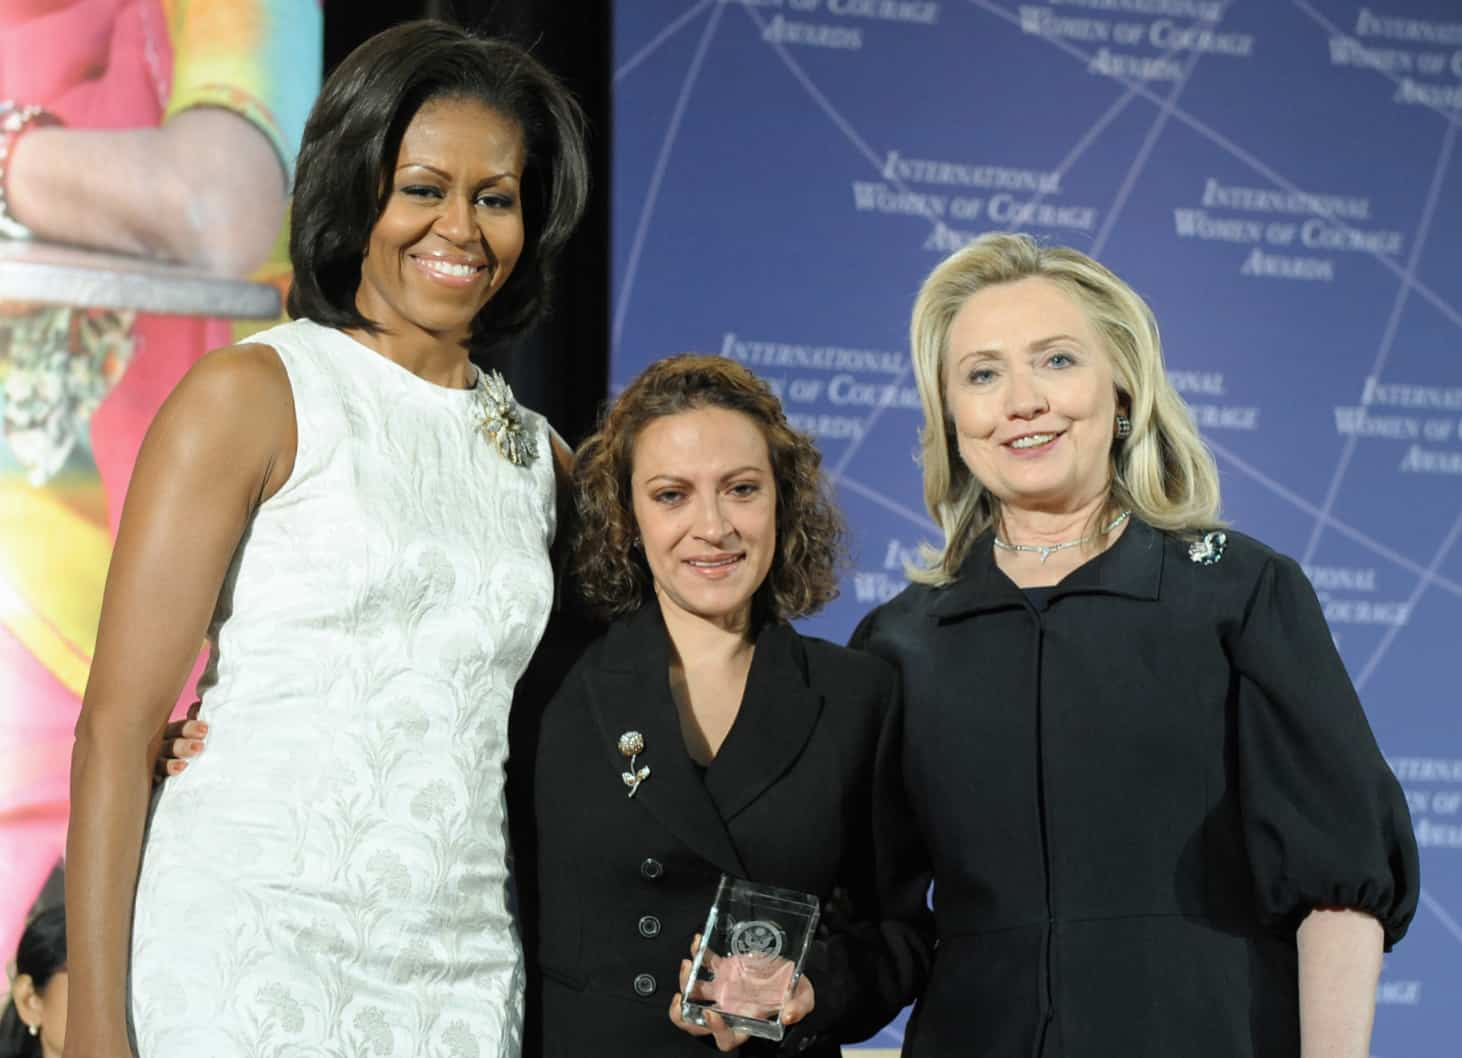 First Lady Michelle Obama, left; and Hillary Rodham Clinton, right; and pose for a photo with 2012 International Women of Courage (IWOC) Award Winner Jineth Bedoya Lima of Colombia